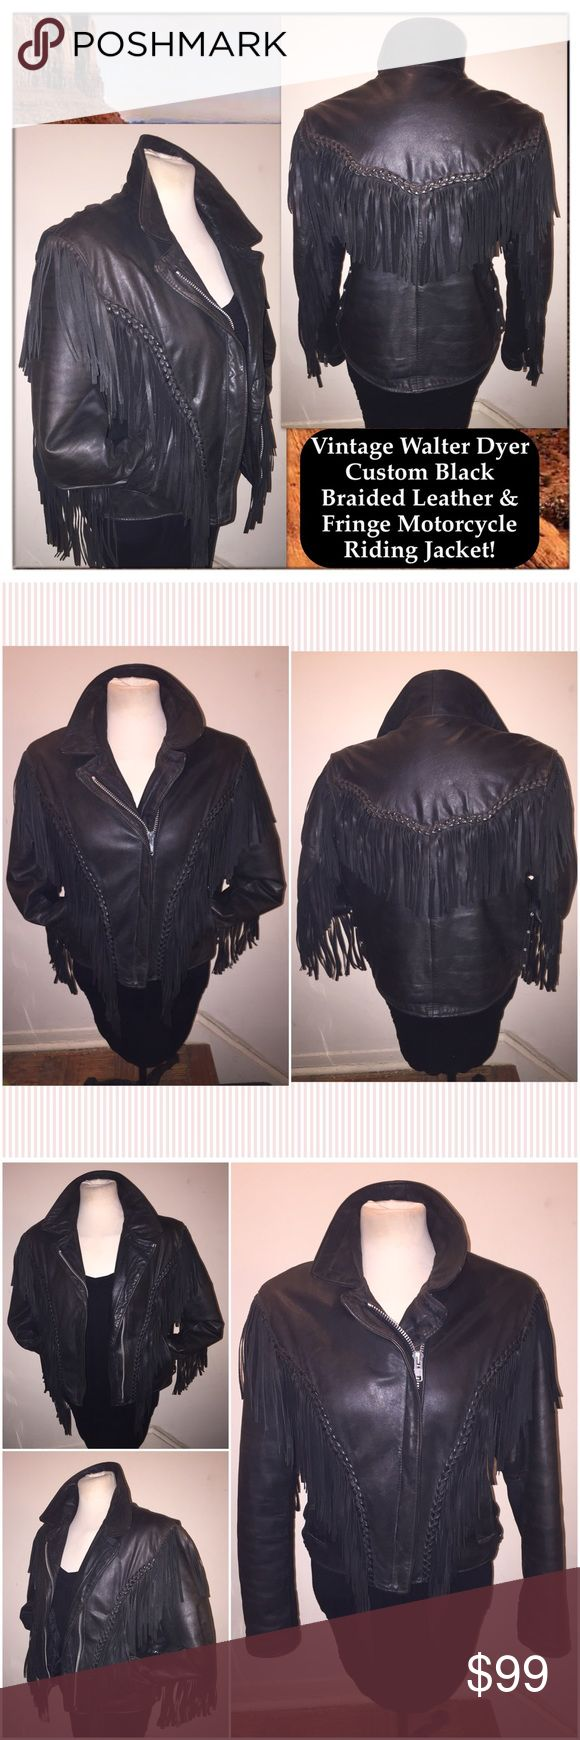 """VTG Walter Dyer Custom Braid Leather Fringe Jacket Vintage Walter Dyer Custom Black Braided Leather & Fringe Motorcycle Riding Jacket! Custom piece by Walter Dyer, braided leather, full fringe trim on front, back & down sleeves design, front zip, zip sleeve cuffs, front pockets. Sz S (ladies) Chest: 22"""" across, Shoulder: 27 1/2"""" across, Sleeve: 30""""  (side of neck to sleeve end), Pit to sleeve end: 17"""", Waist: 40"""" around, Back length: 22 1/2"""". Original side leather lace ties were replaced…"""